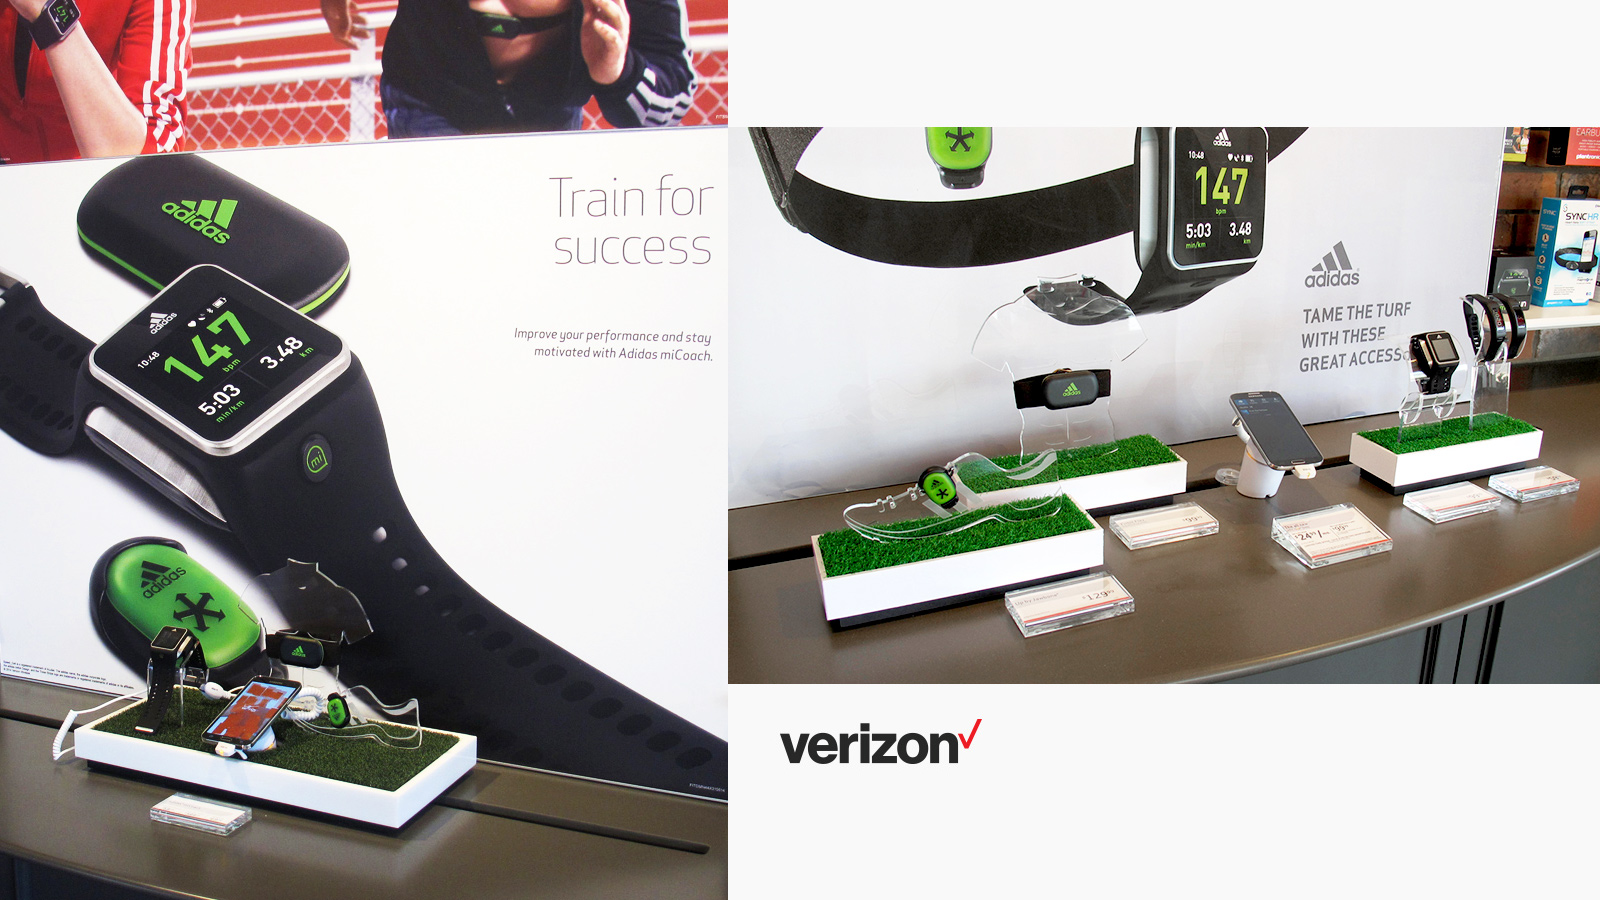 Verizon Visual Merchandising